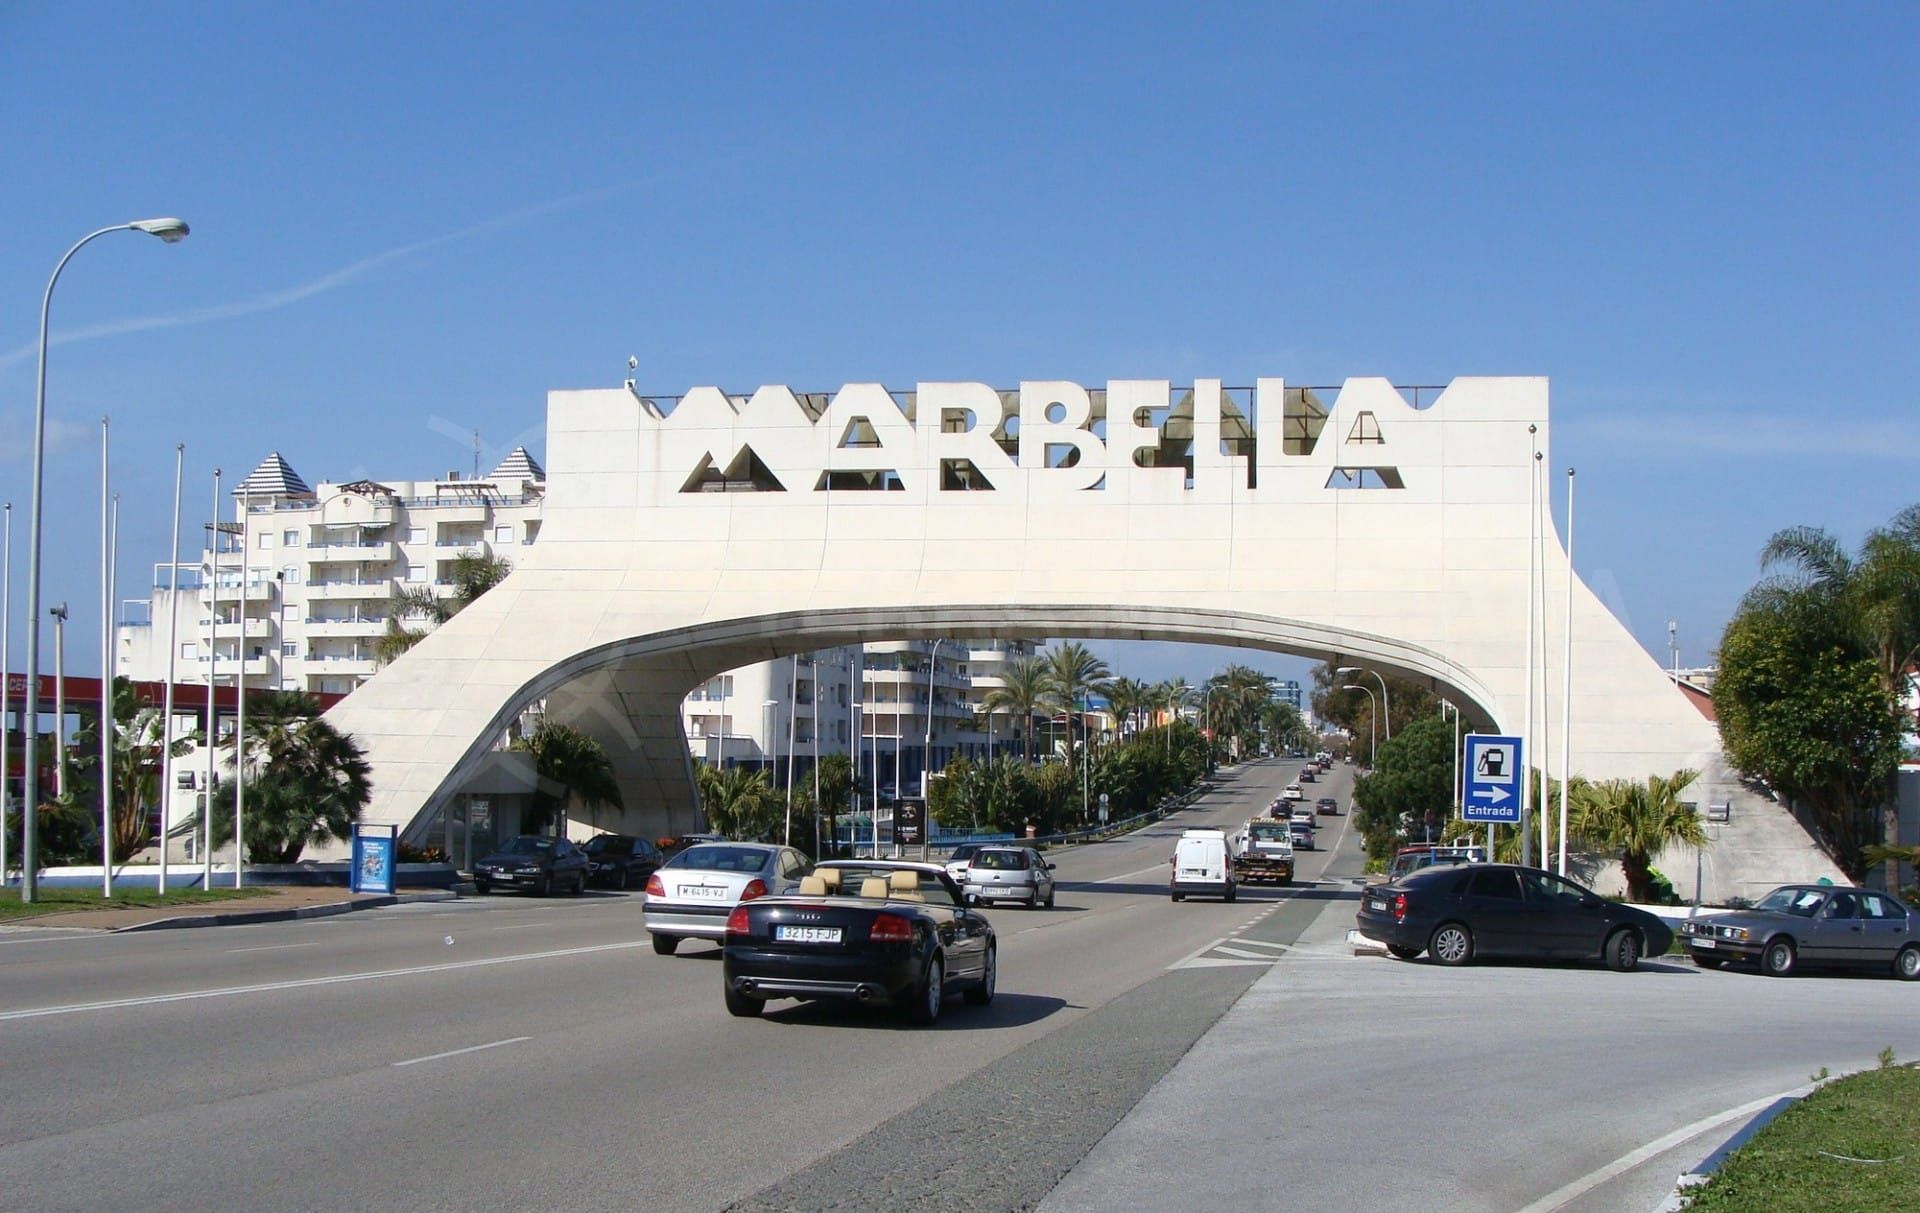 Back to the past: Supreme Court leaves Marbella without a town plan